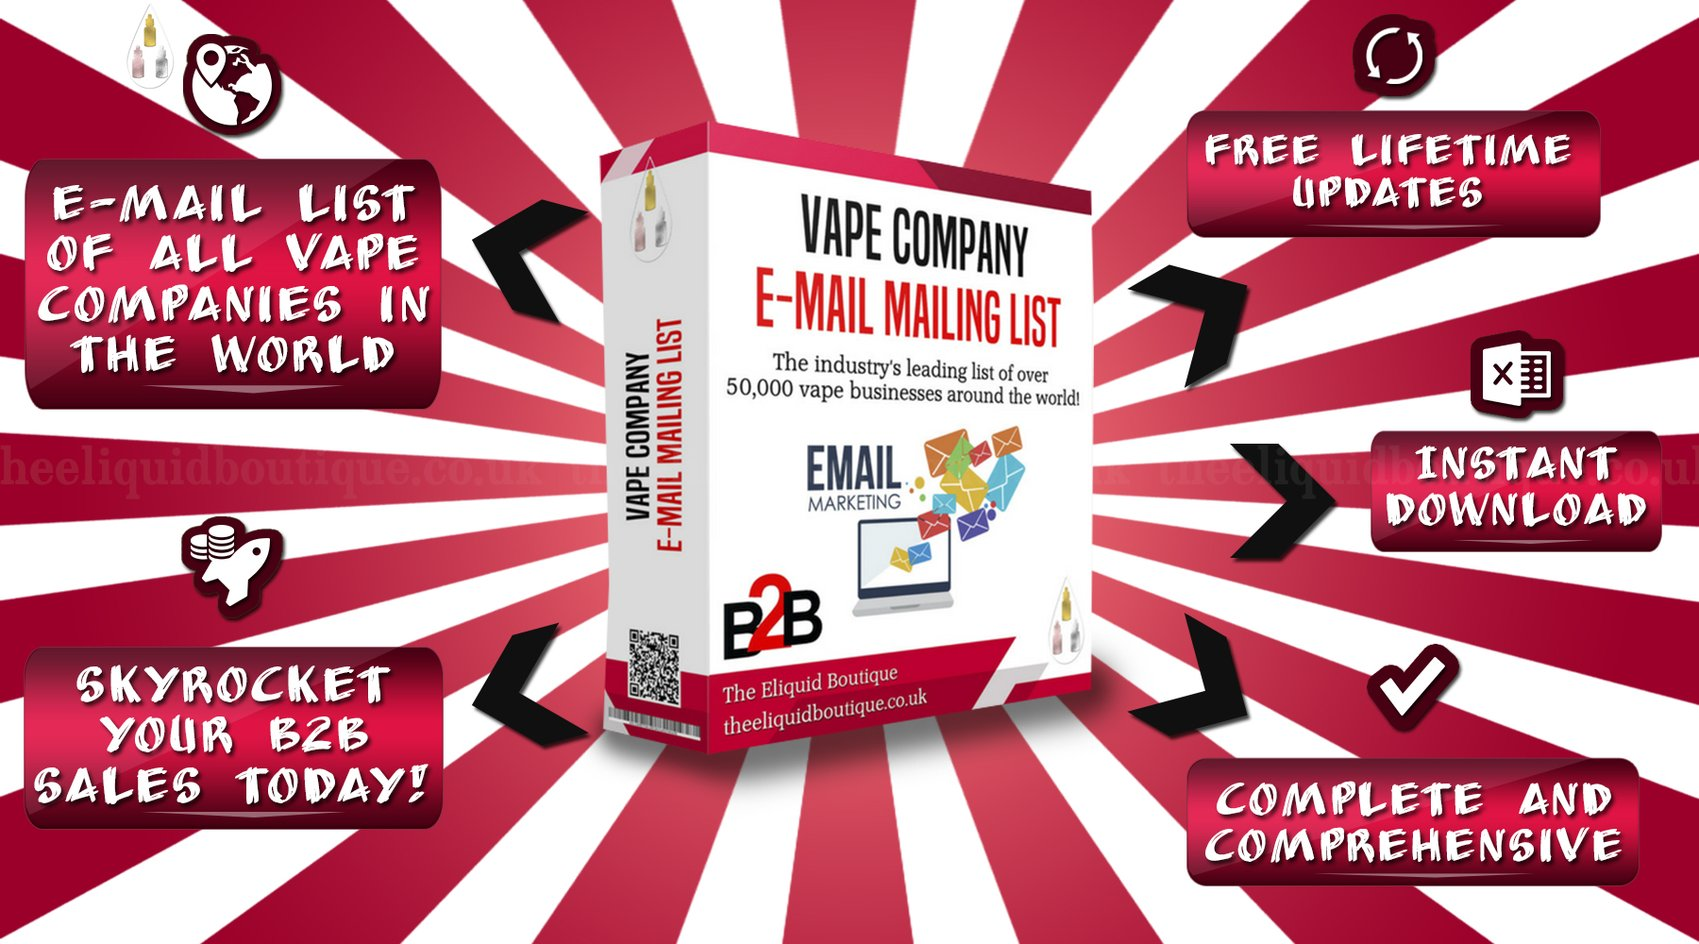 Hooray! The Vape Company Email List Has Undergone Another Update Today!